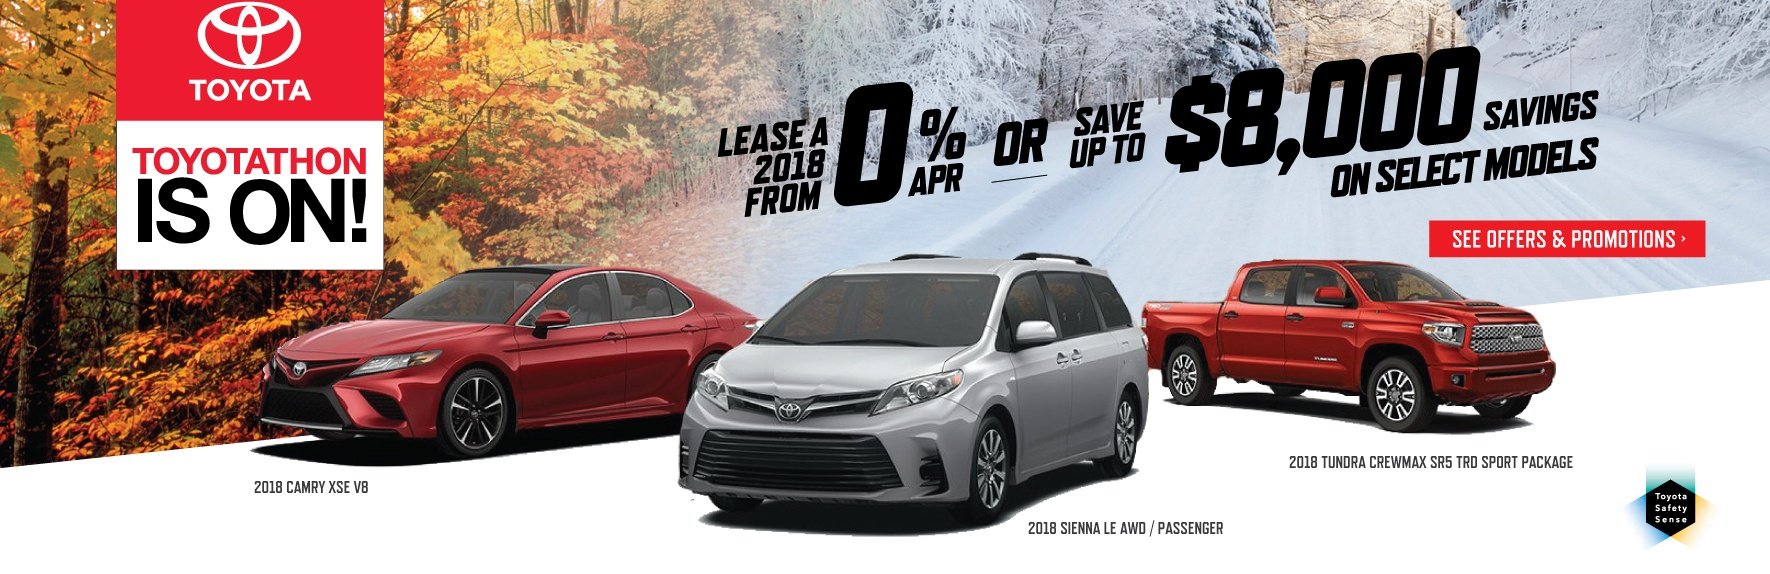 Toyota sale promotion toronto ontario toyota dealership